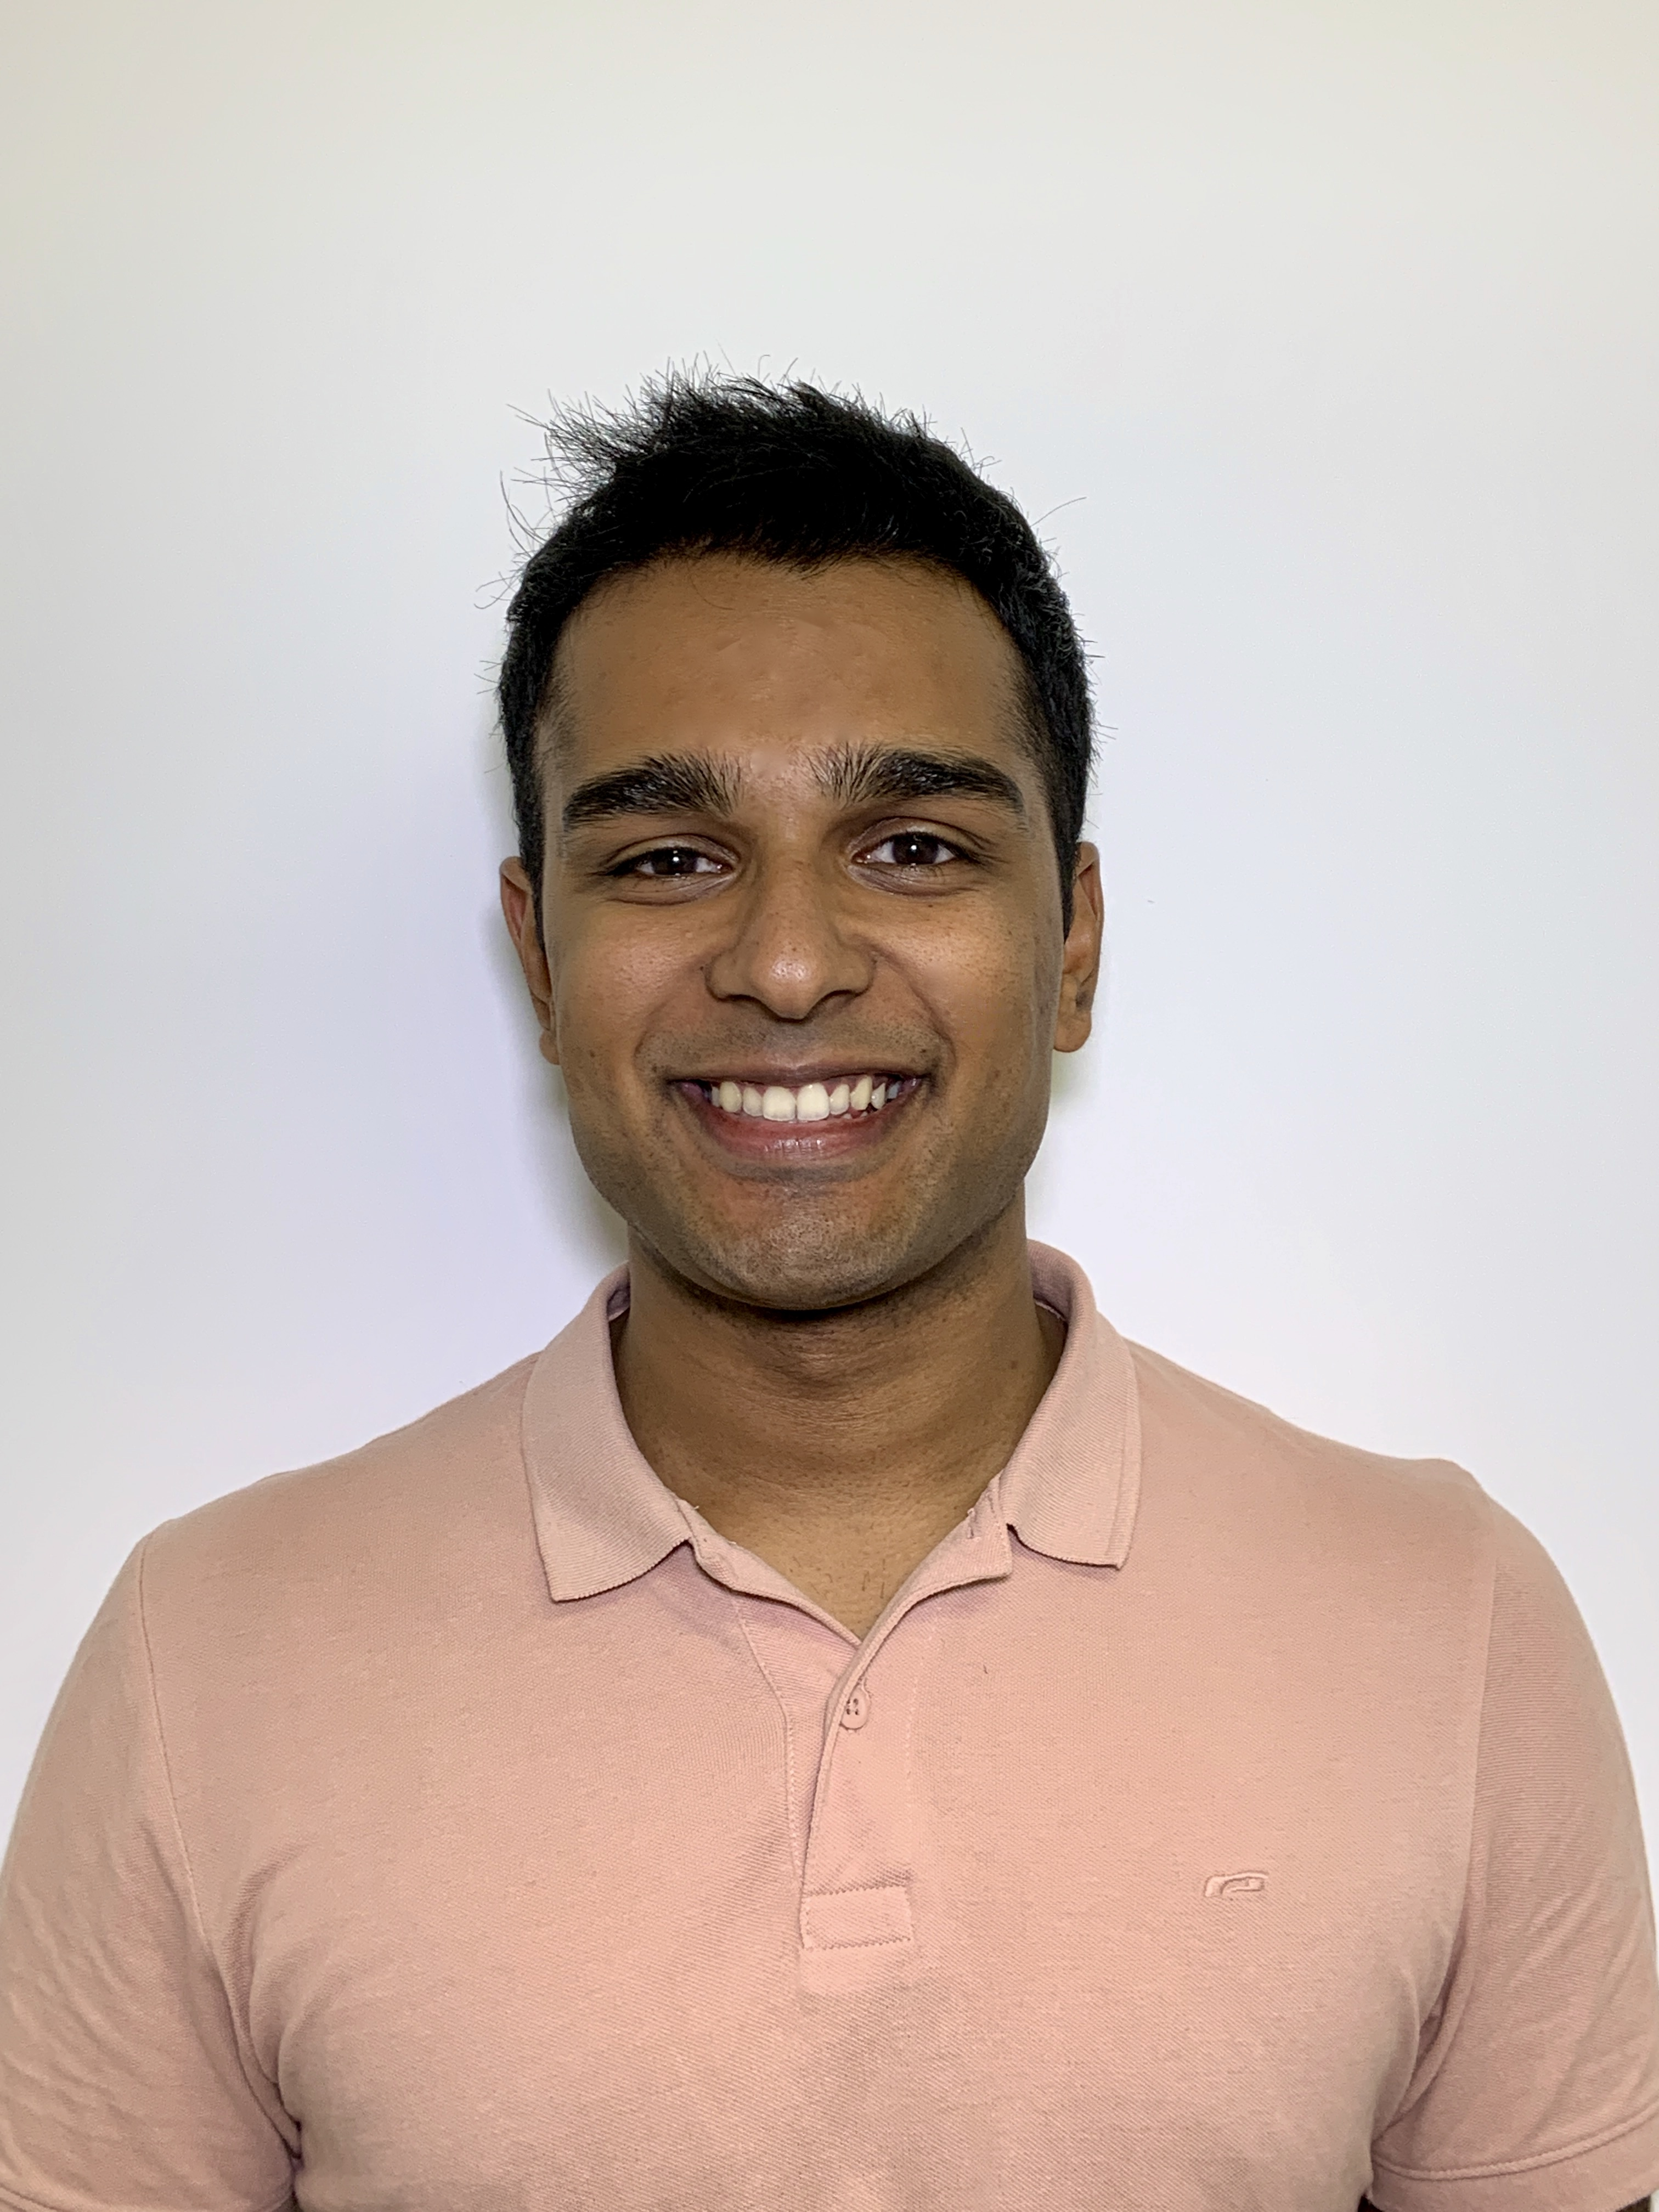 Vrajesh Dave is a postgraduate journalism student at Humber College.